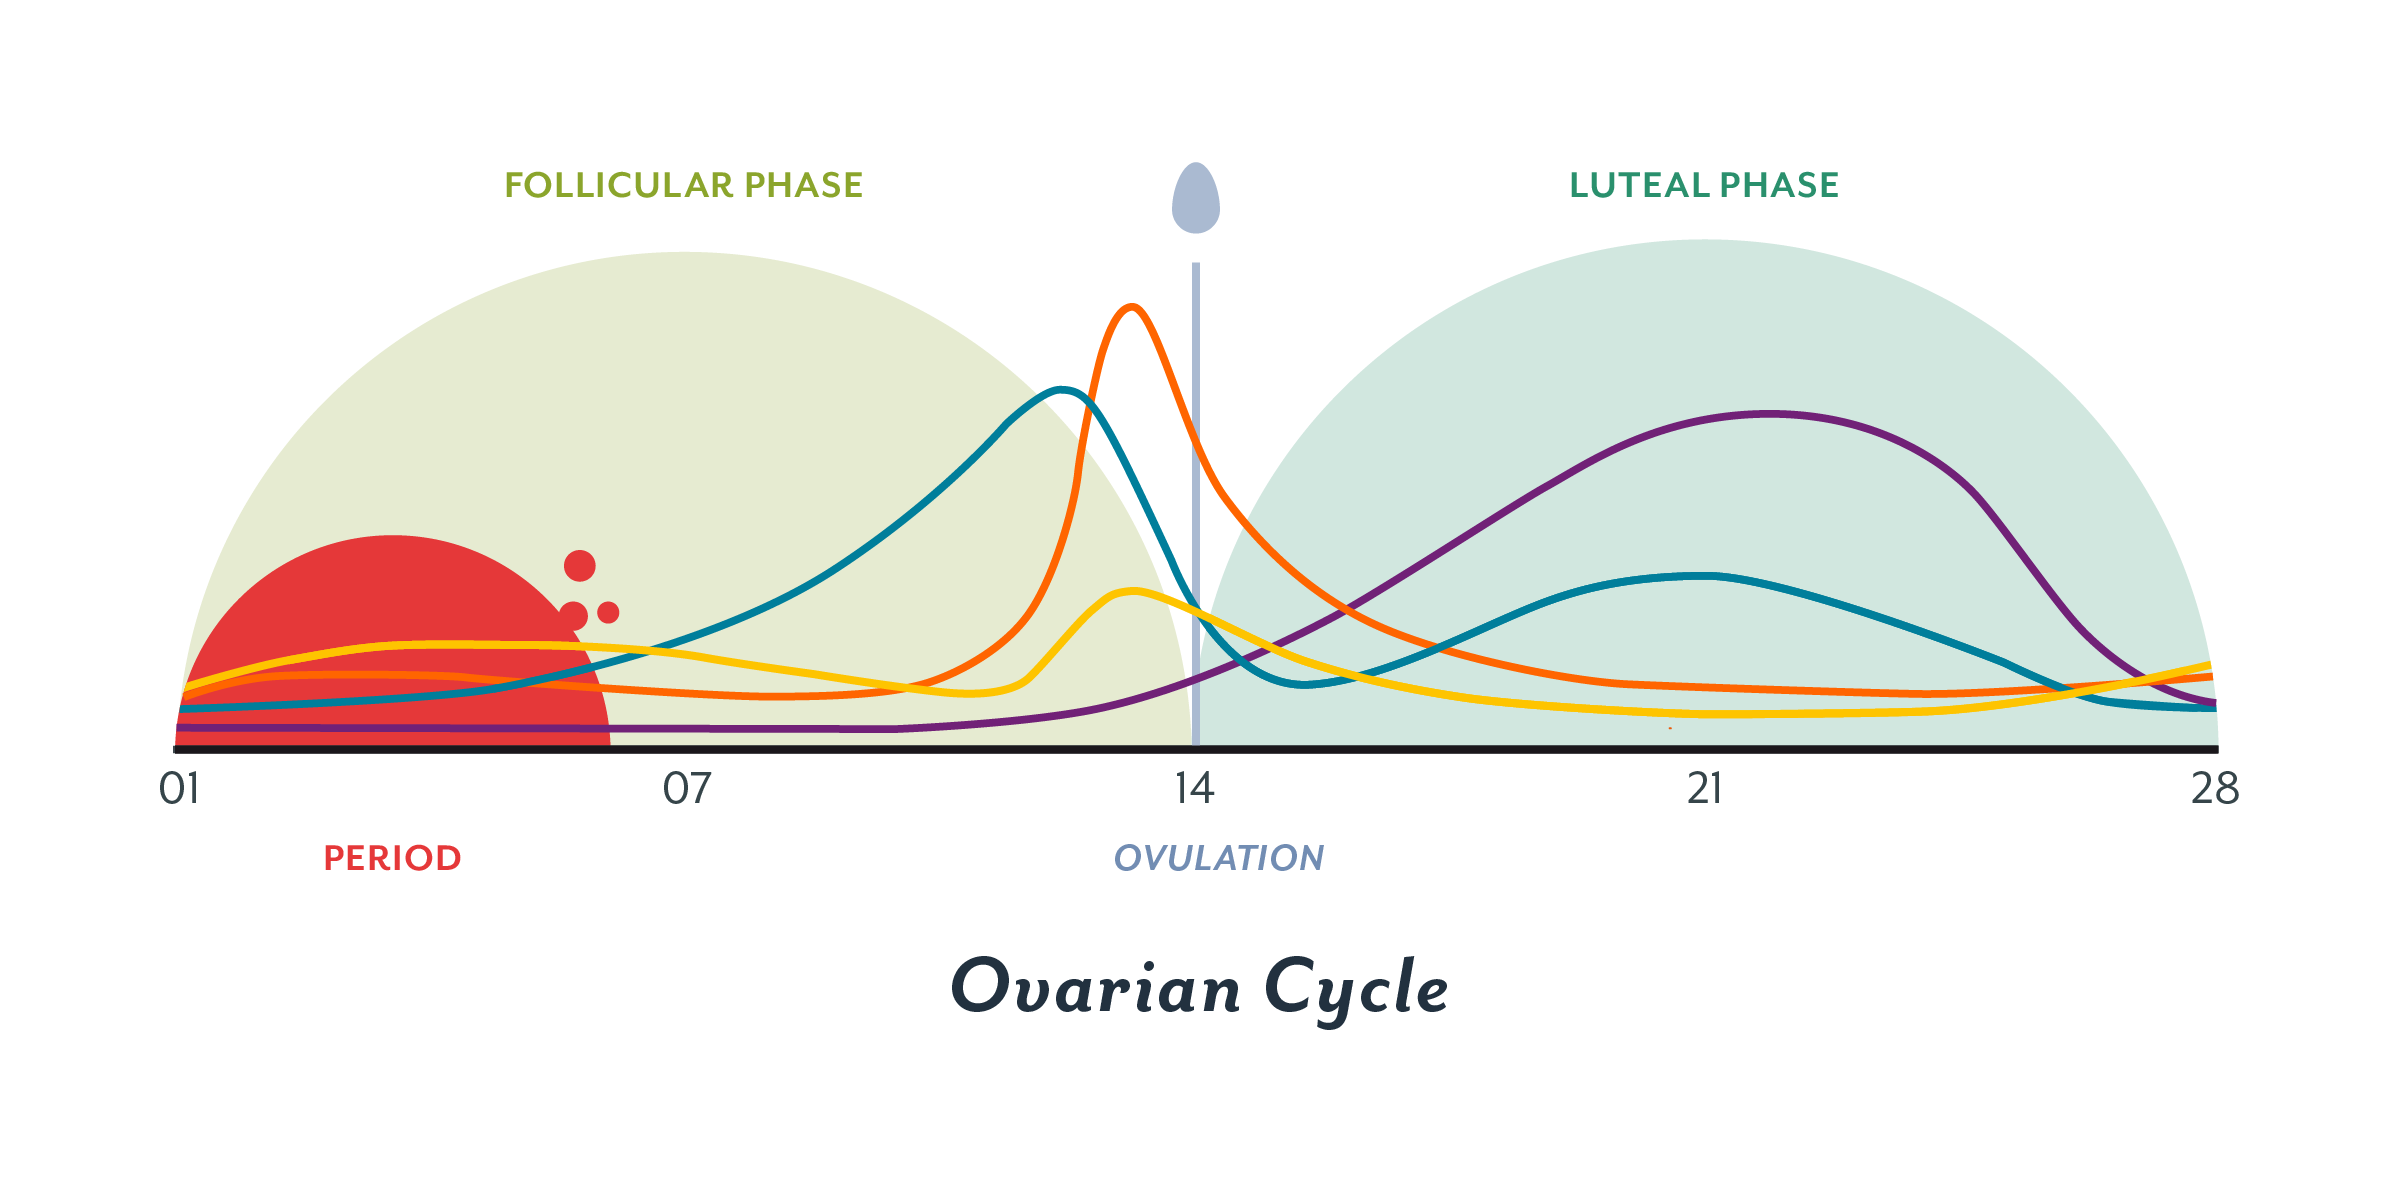 Image result for luteal phase of the menstrual cycle